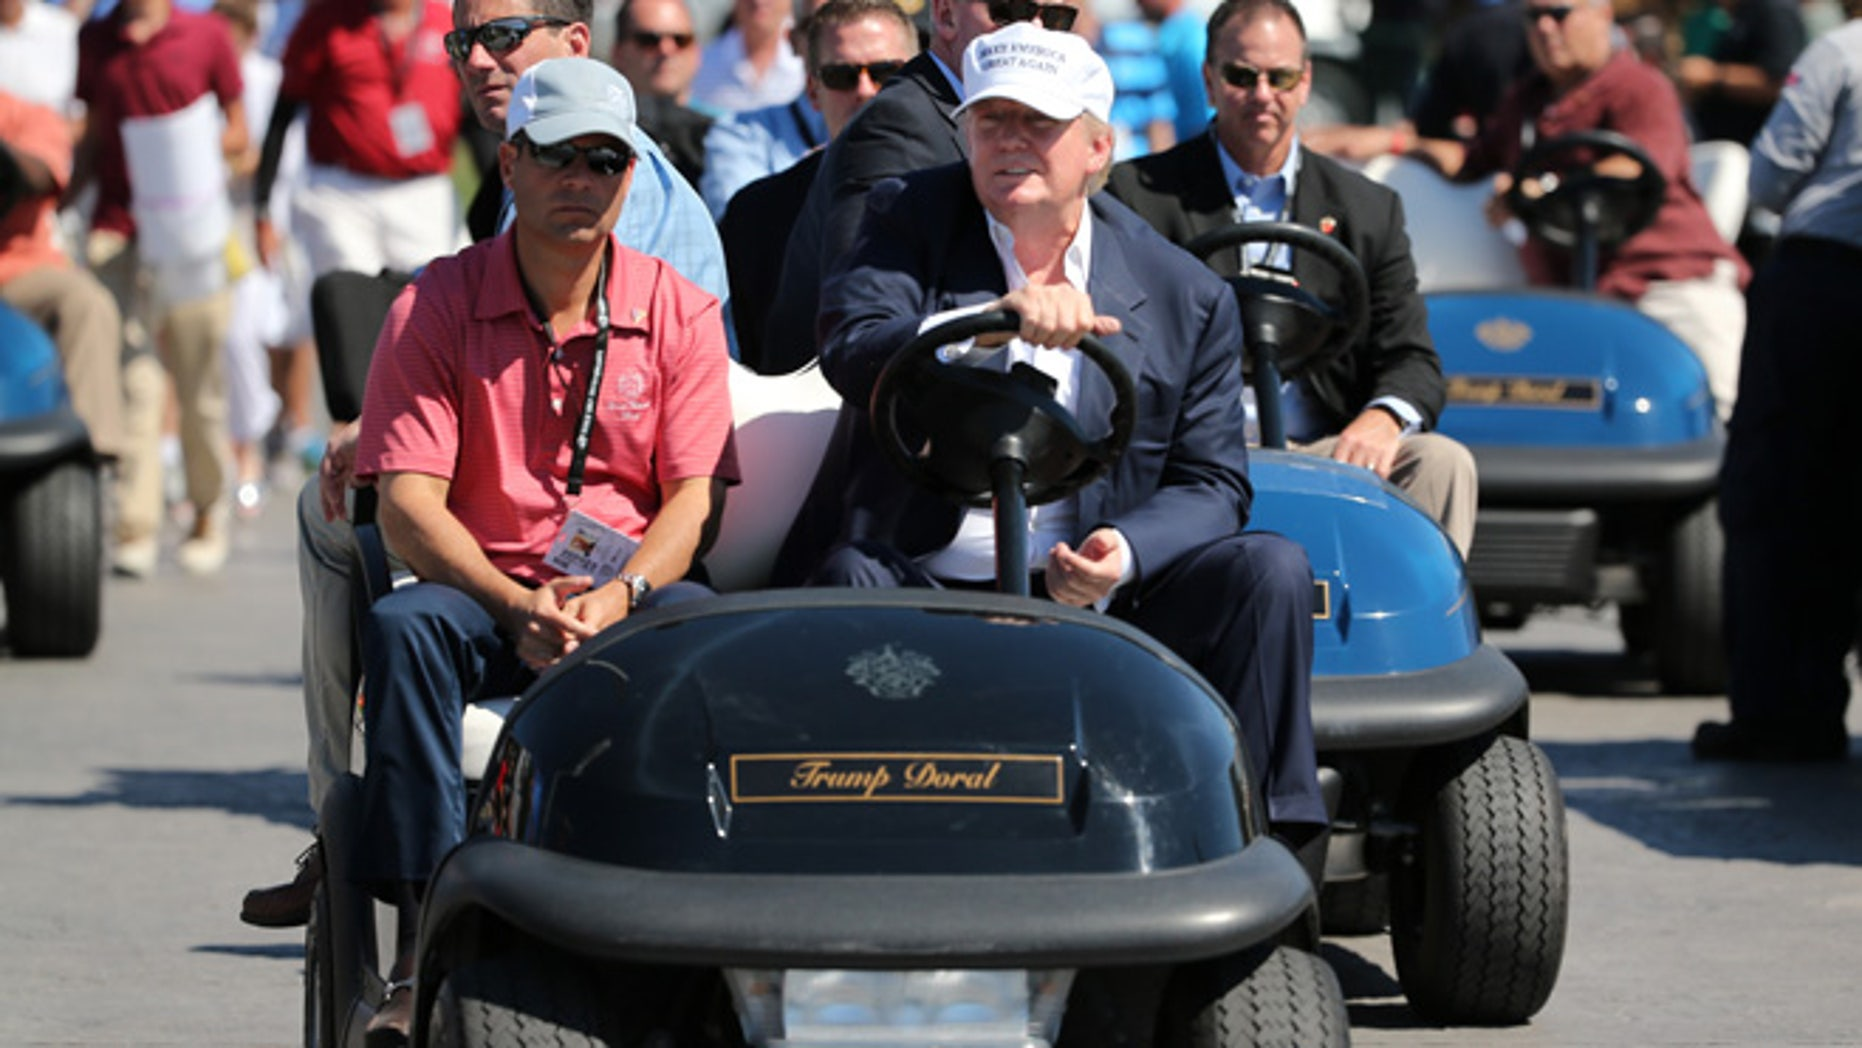 Republican presidential candidate Donald Trump makes an appearance prior to the start of play during the final round of the World Golf Championships-Cadillac Championship at Trump National Doral Blue Monster Course  on March 6, 2016 in Doral, Florida.  (Photo by Mike Ehrmann/Getty Images)